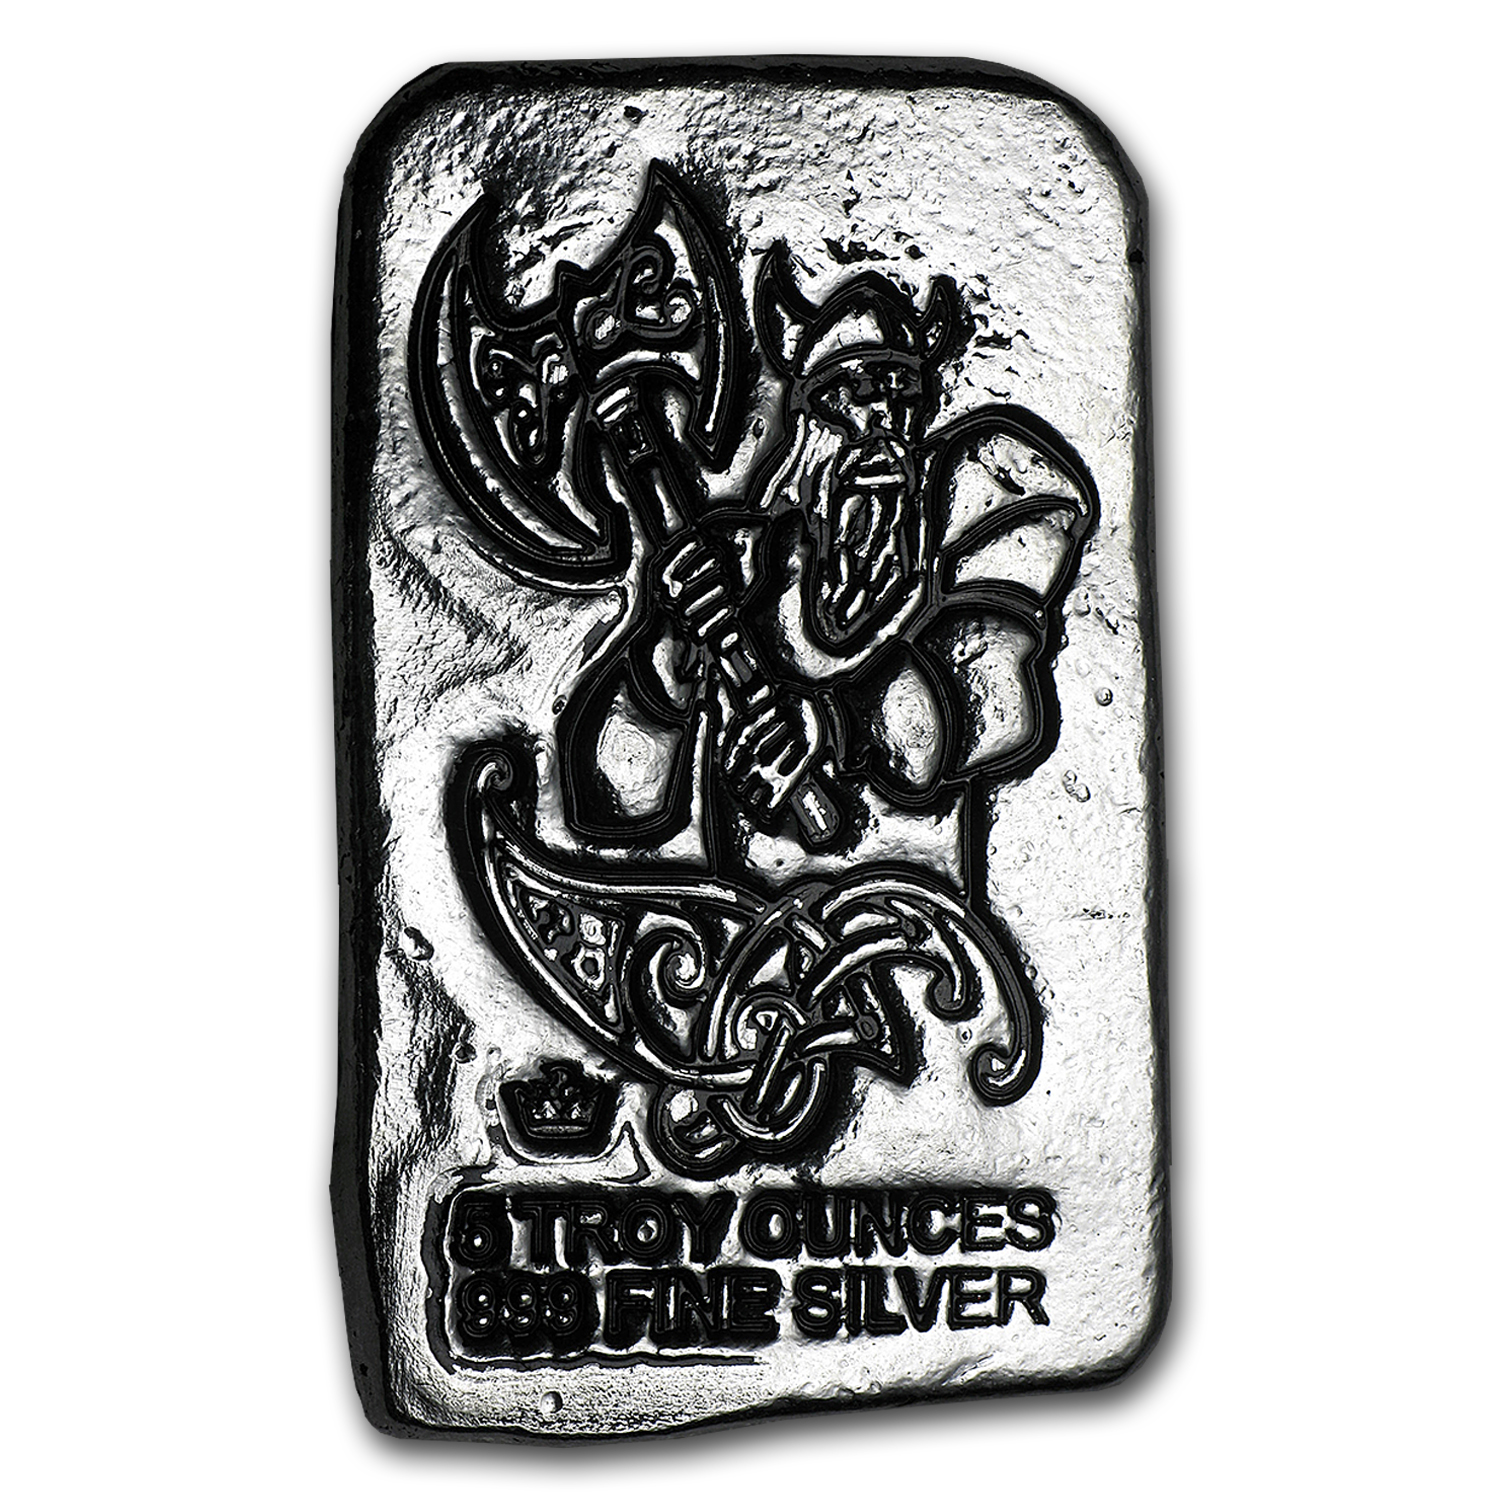 5 oz Silver Bar - Monarch Viking Warrior (Battle Axe)